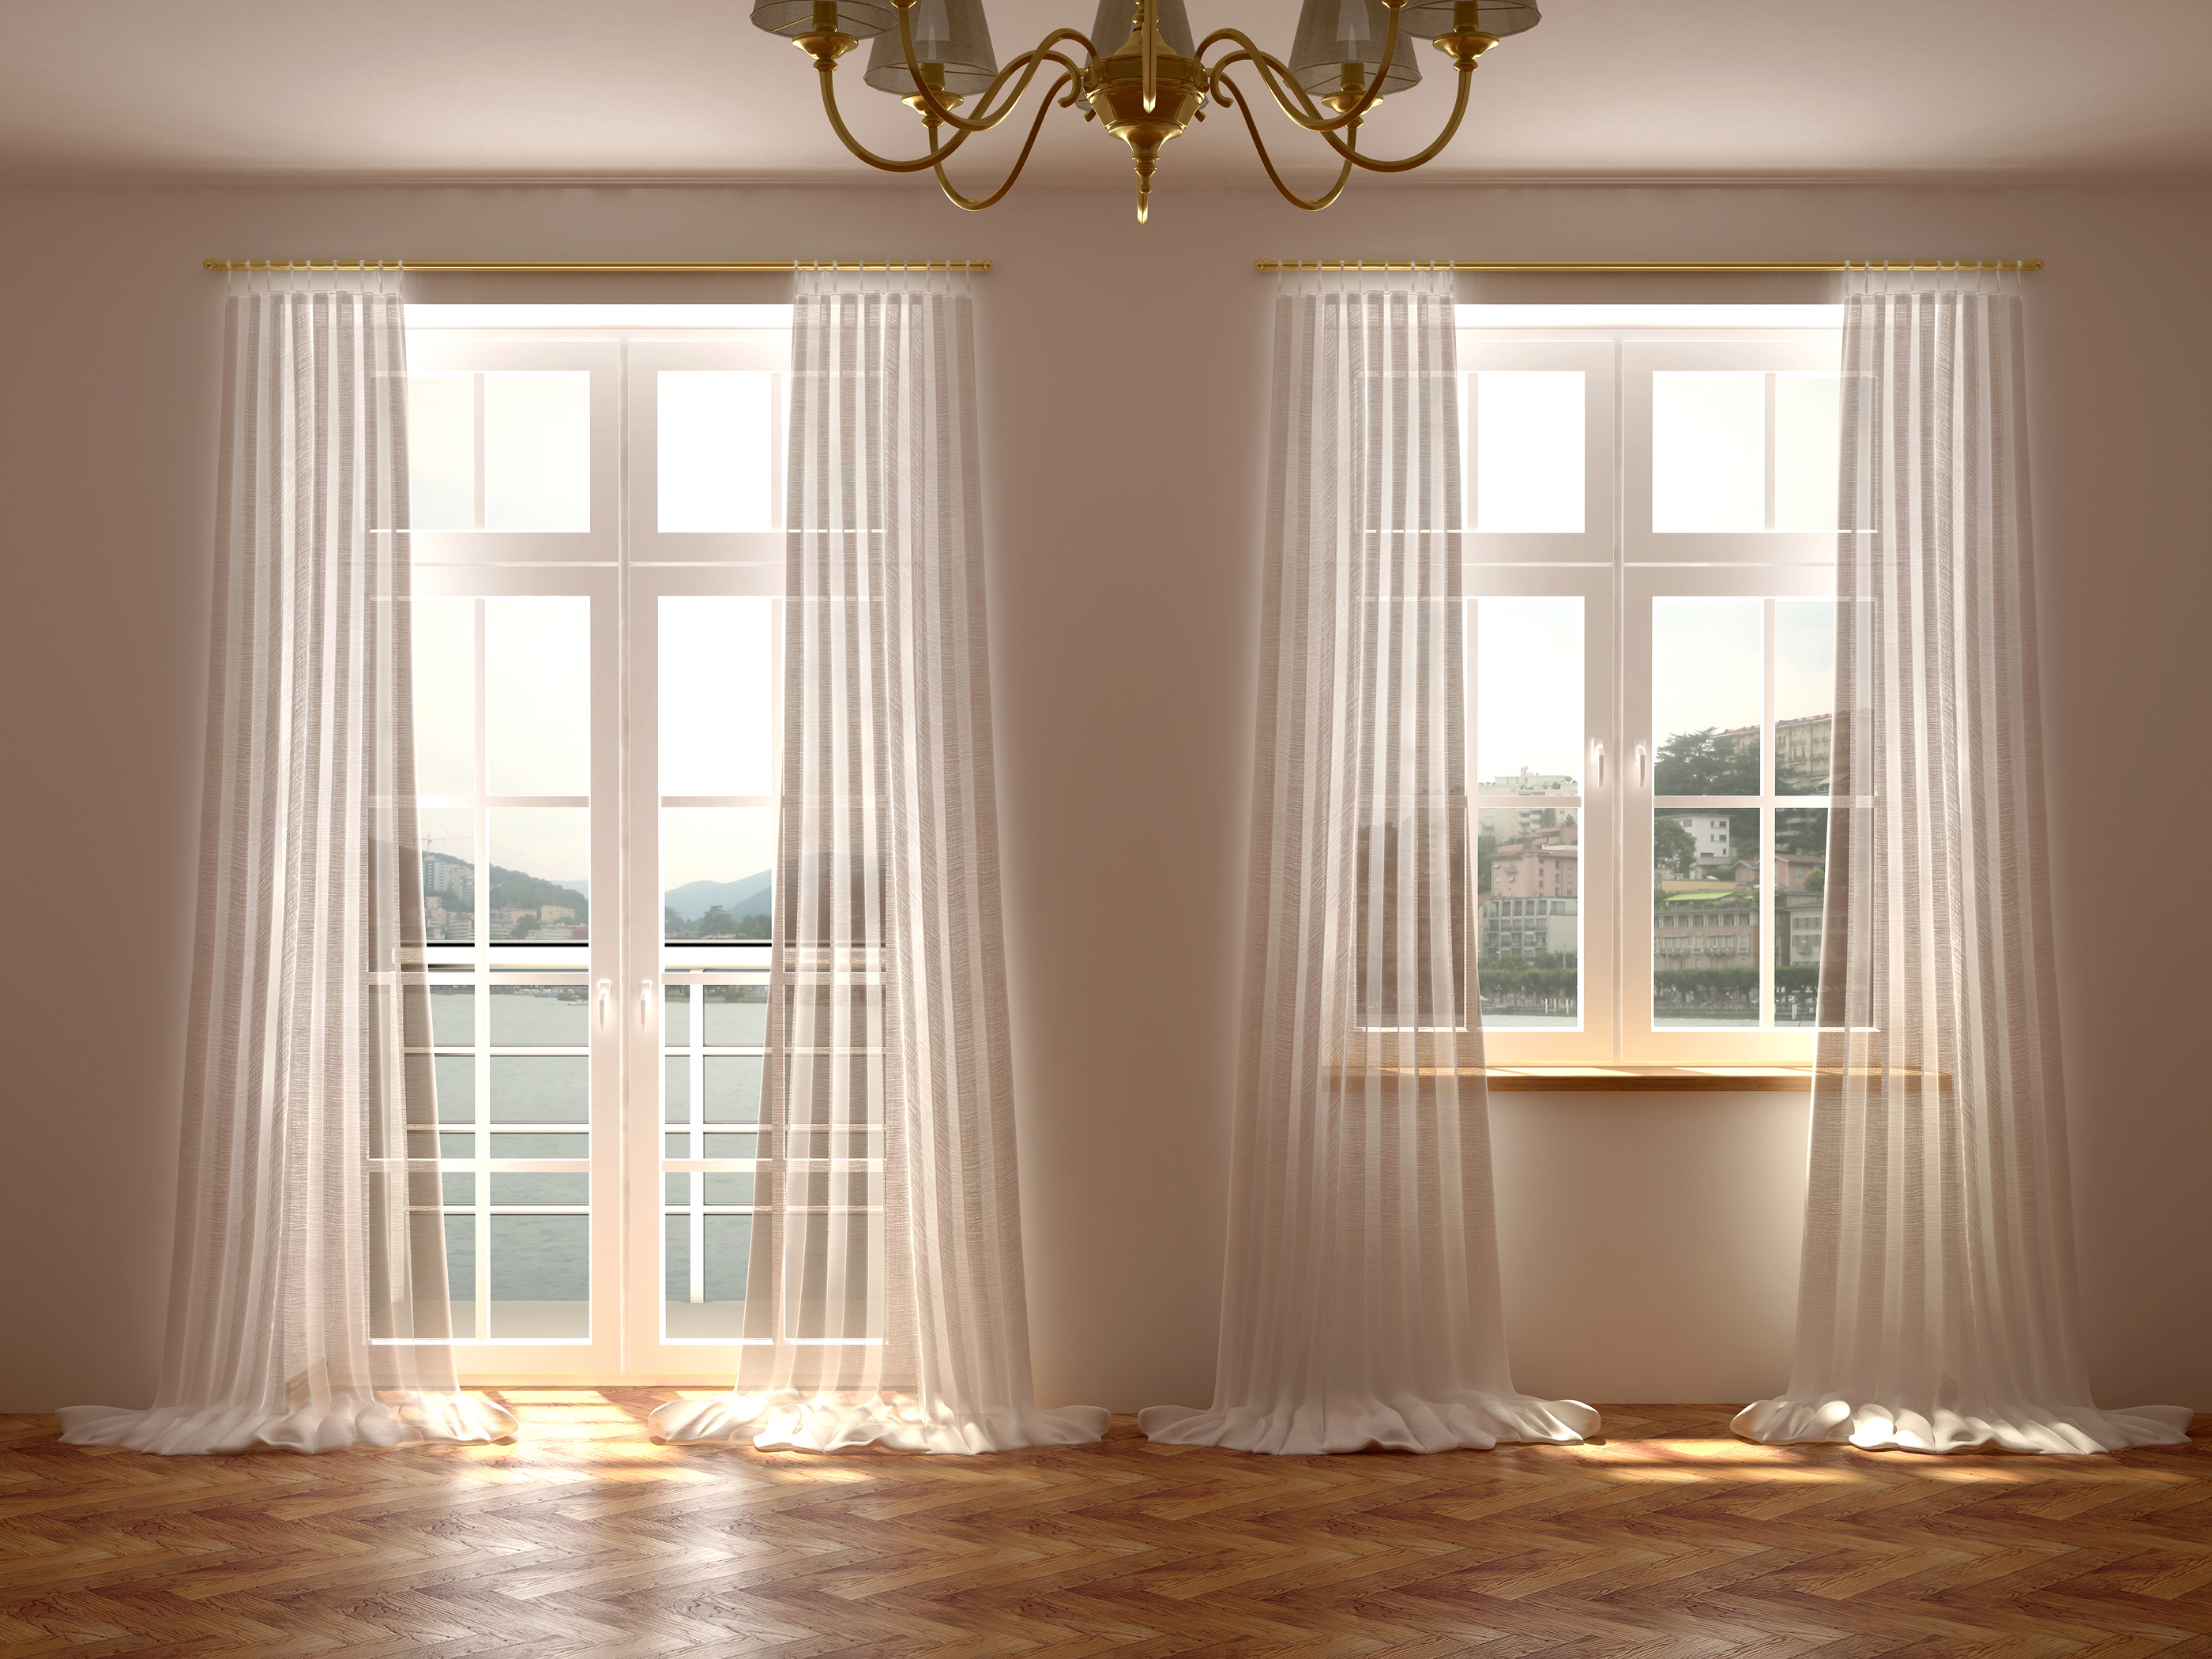 Interior design curtain blinds curtain menzilperde net - Latest interior curtain design ...